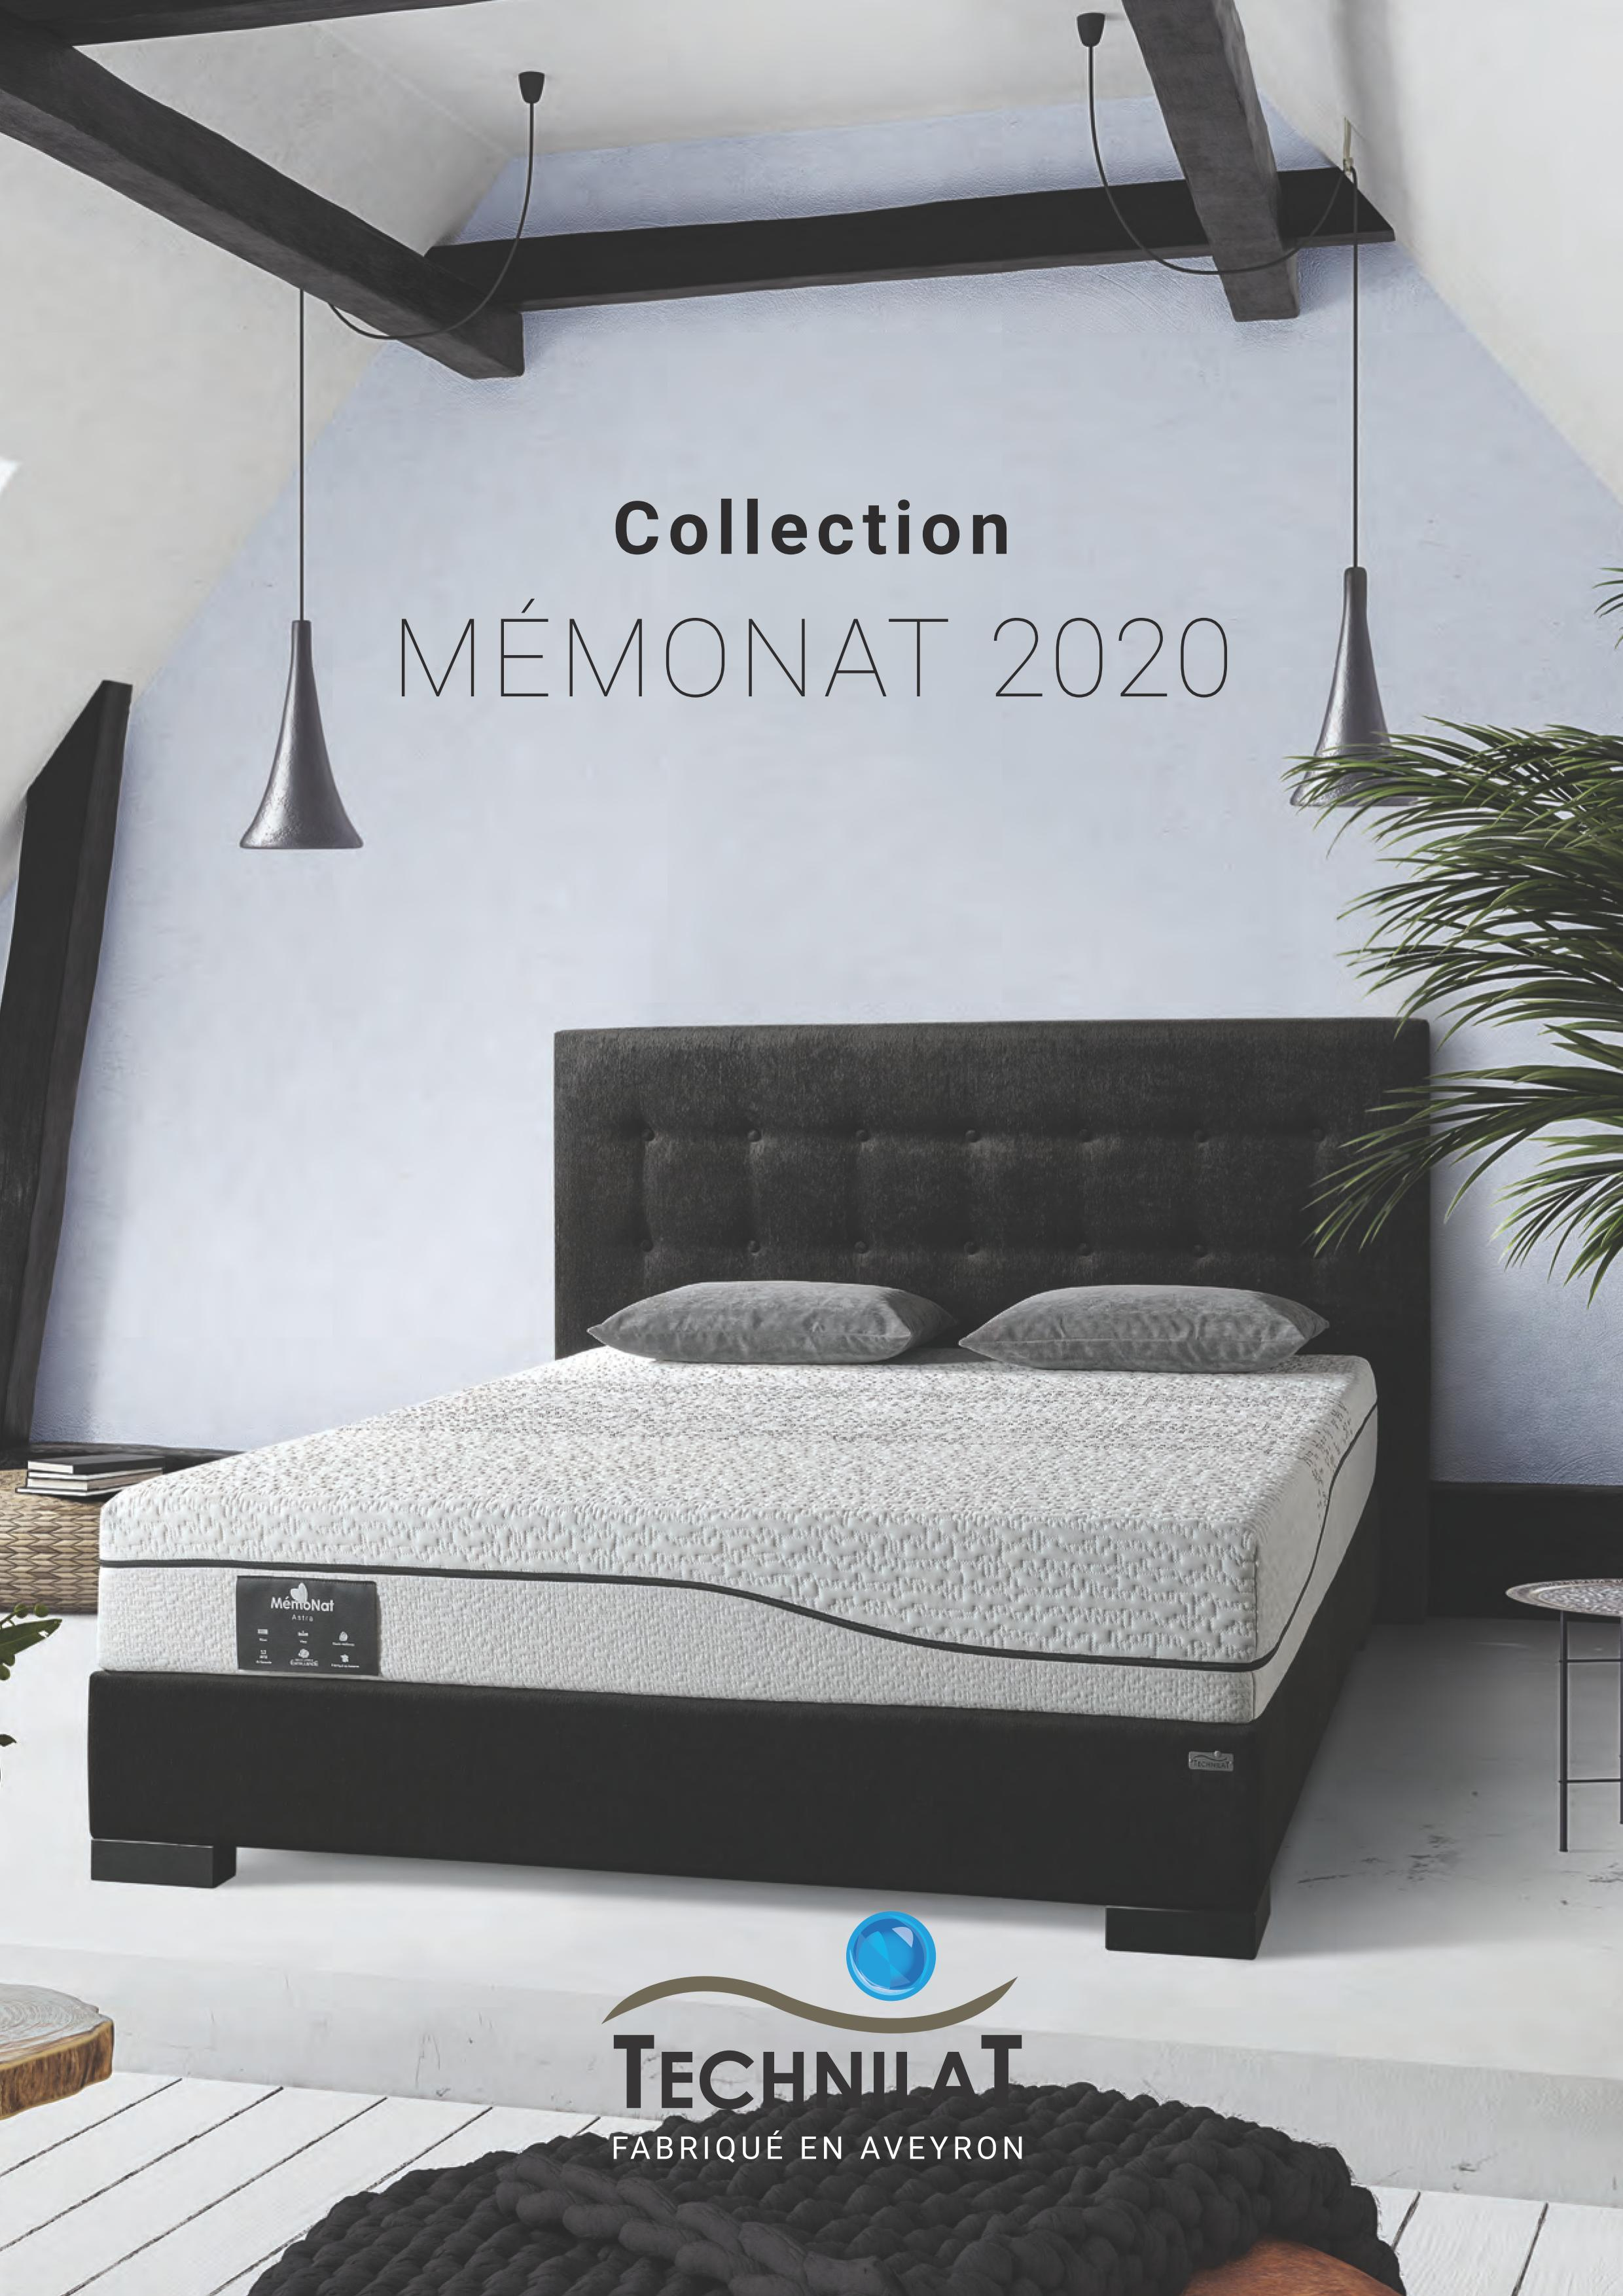 Collection Memonat